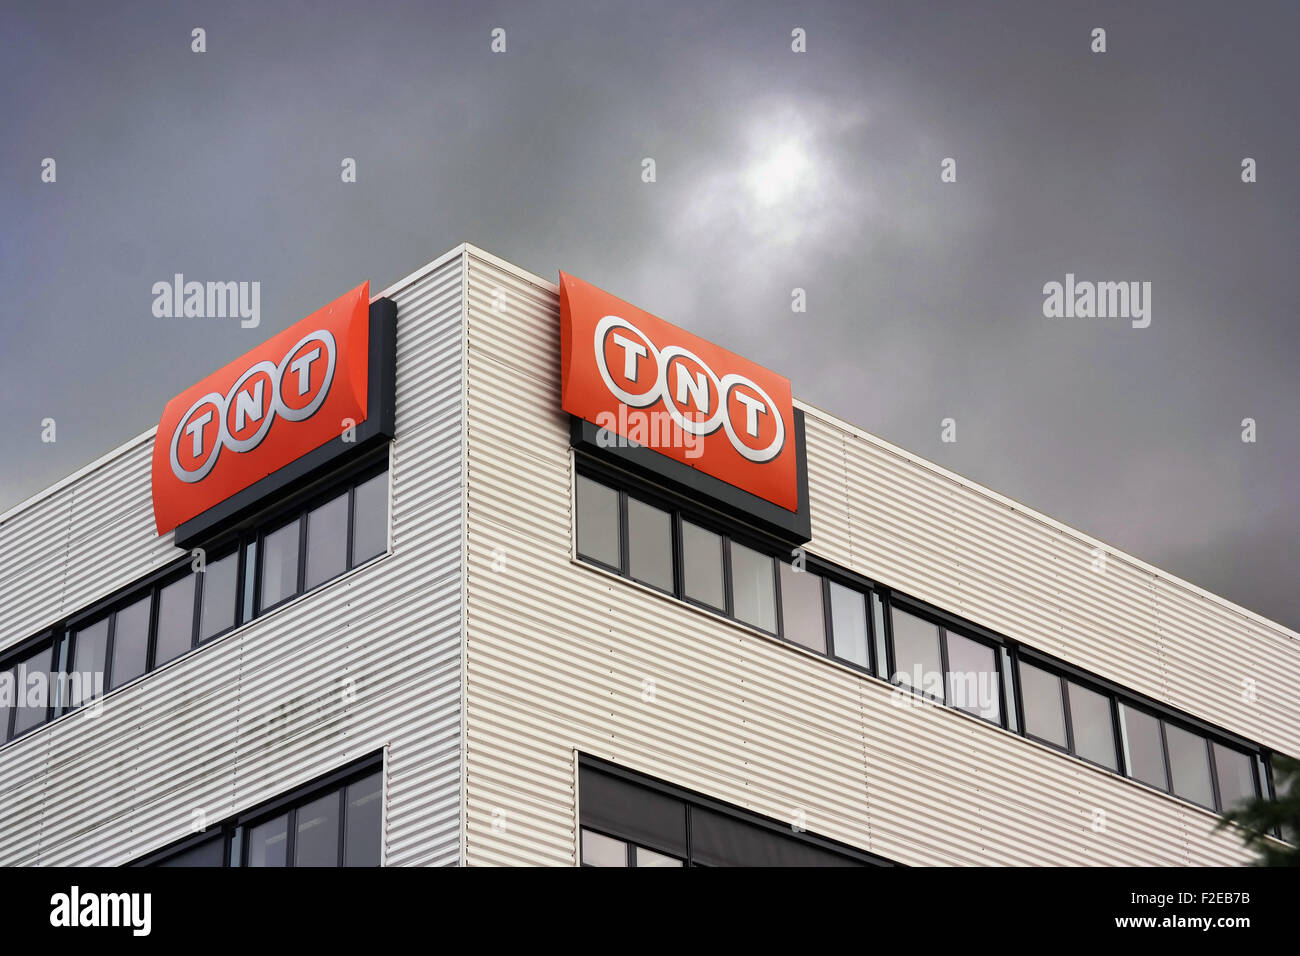 TNT logo on building in Nieuwegein, Netherlands. TNT Express N.V. is an international courier delivery services - Stock Image